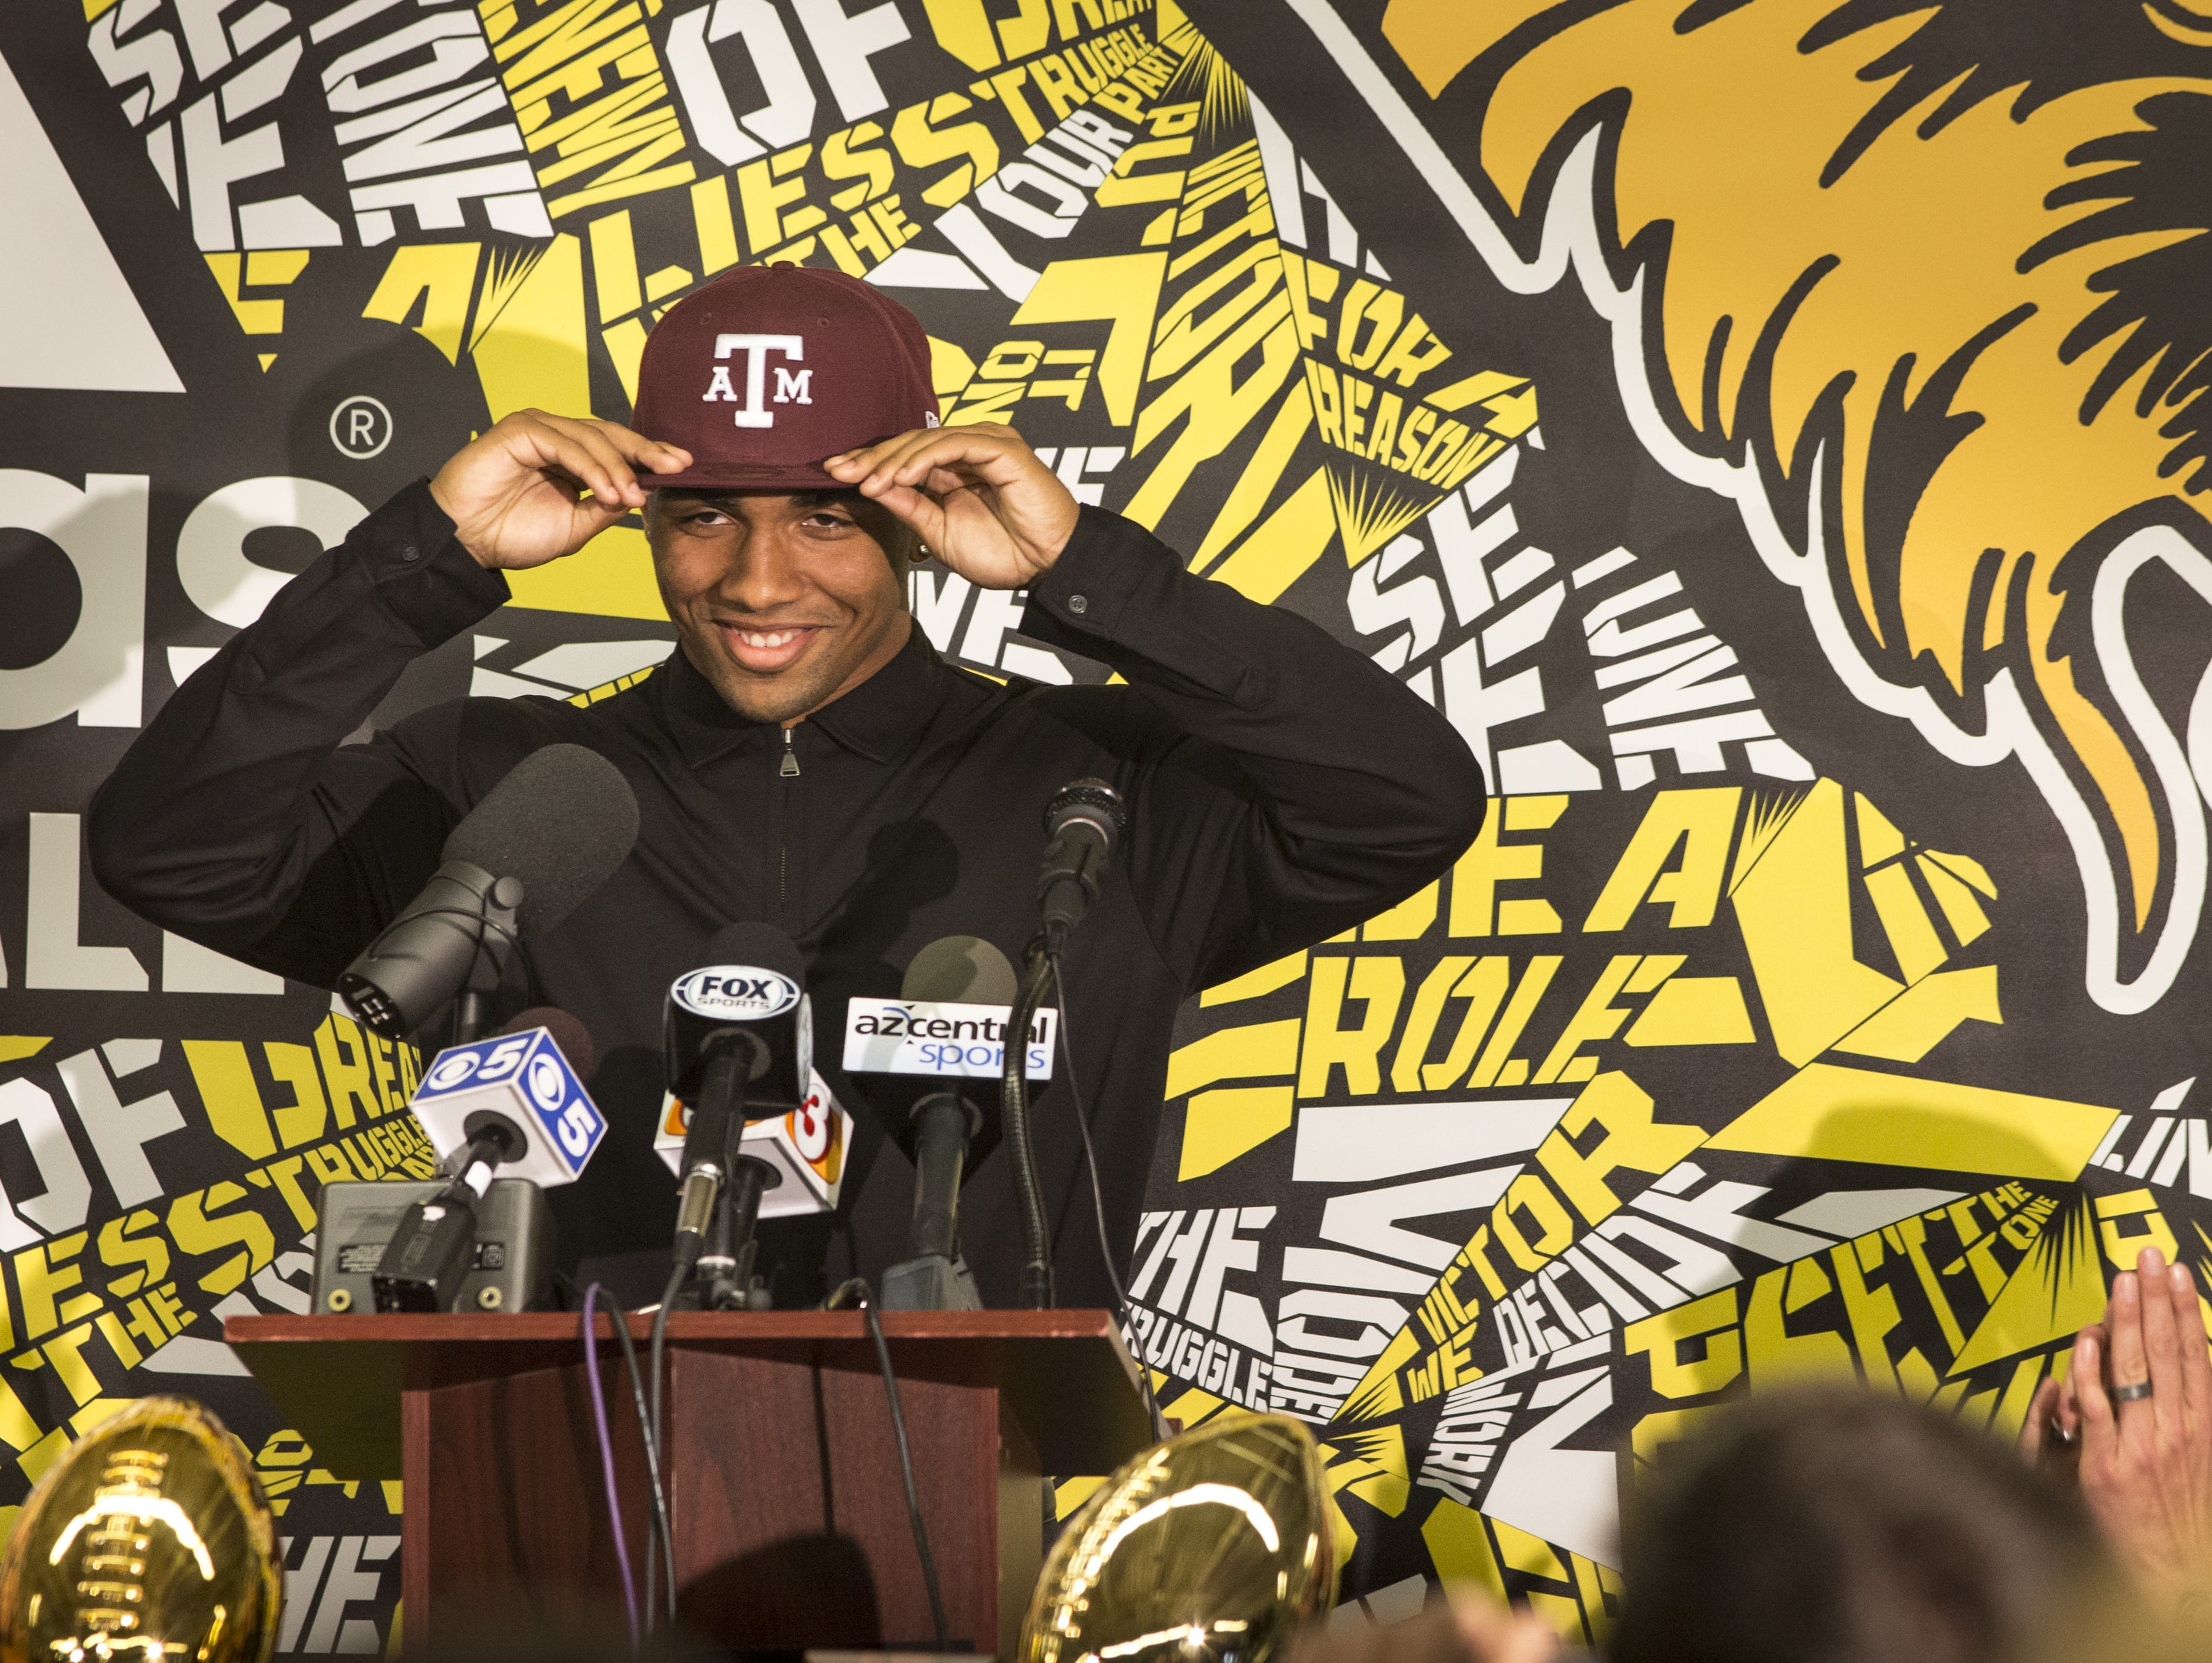 Saguaro High School star football receiver Christian Kirk chose Texas A&M over ASU. He will play ASU in his first game as a starting receiver for A&M.